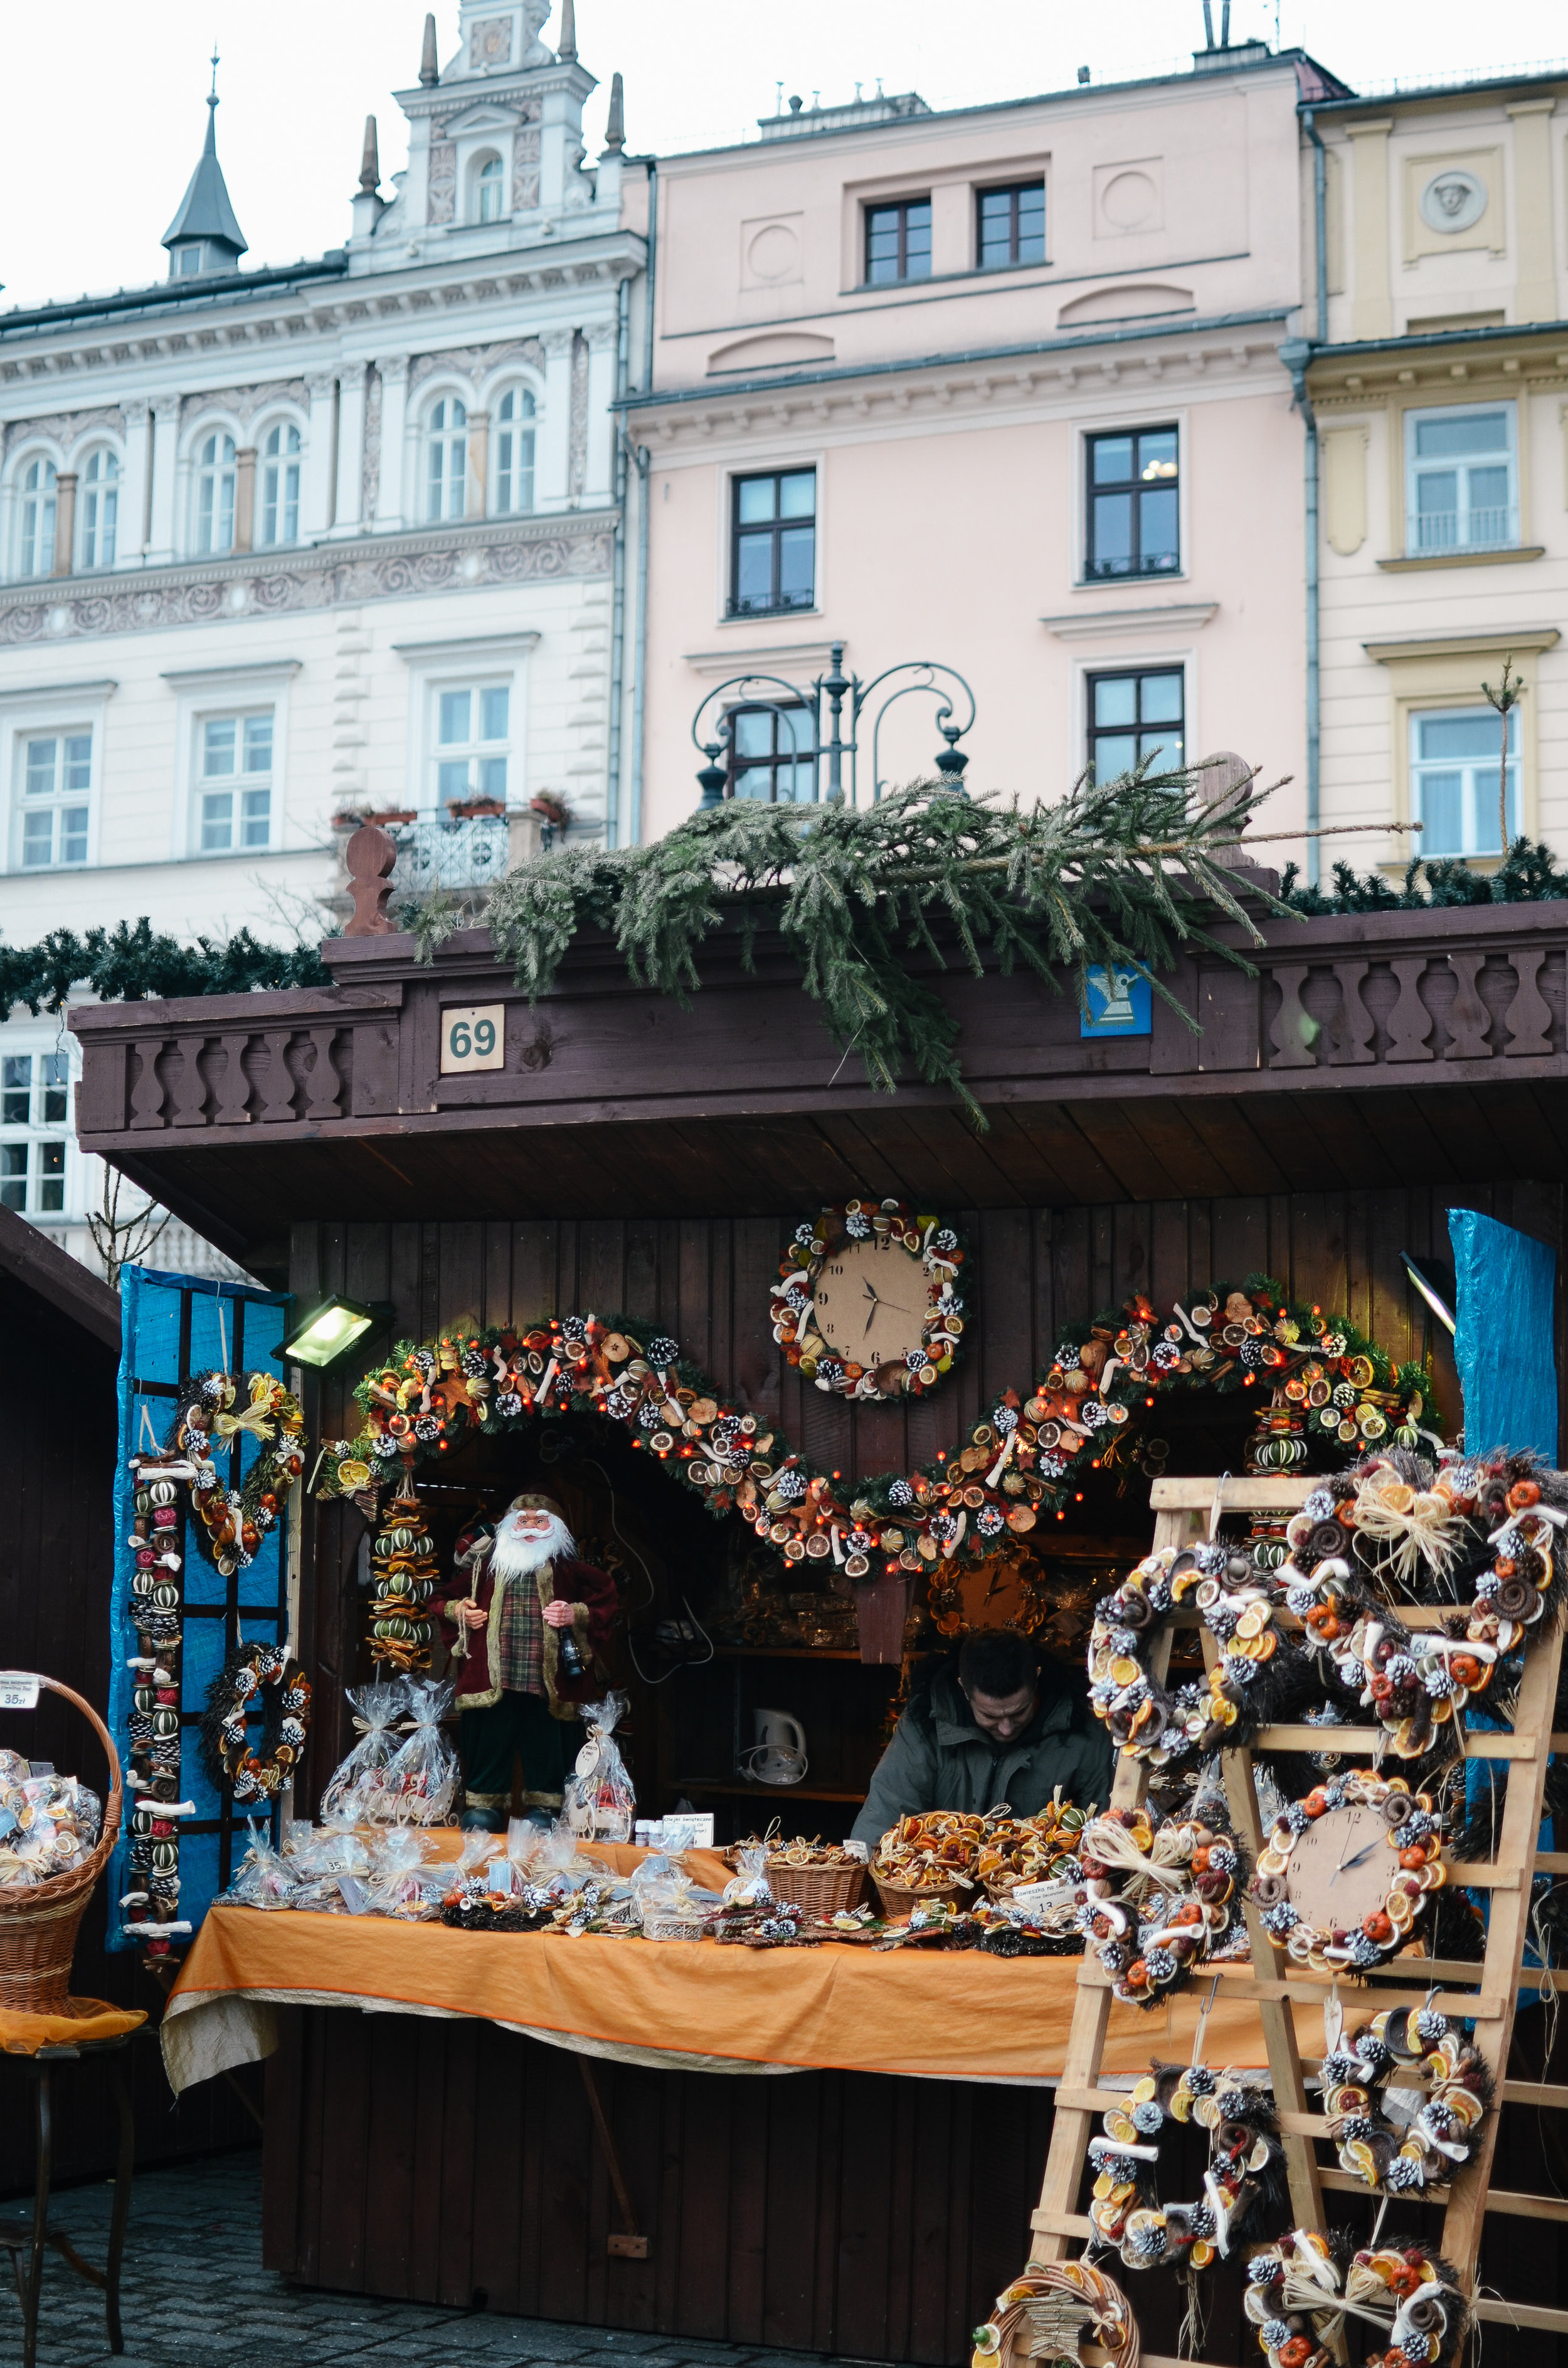 european-christmas-market-travel-guide-lifeonpine_DSC_1073.jpg